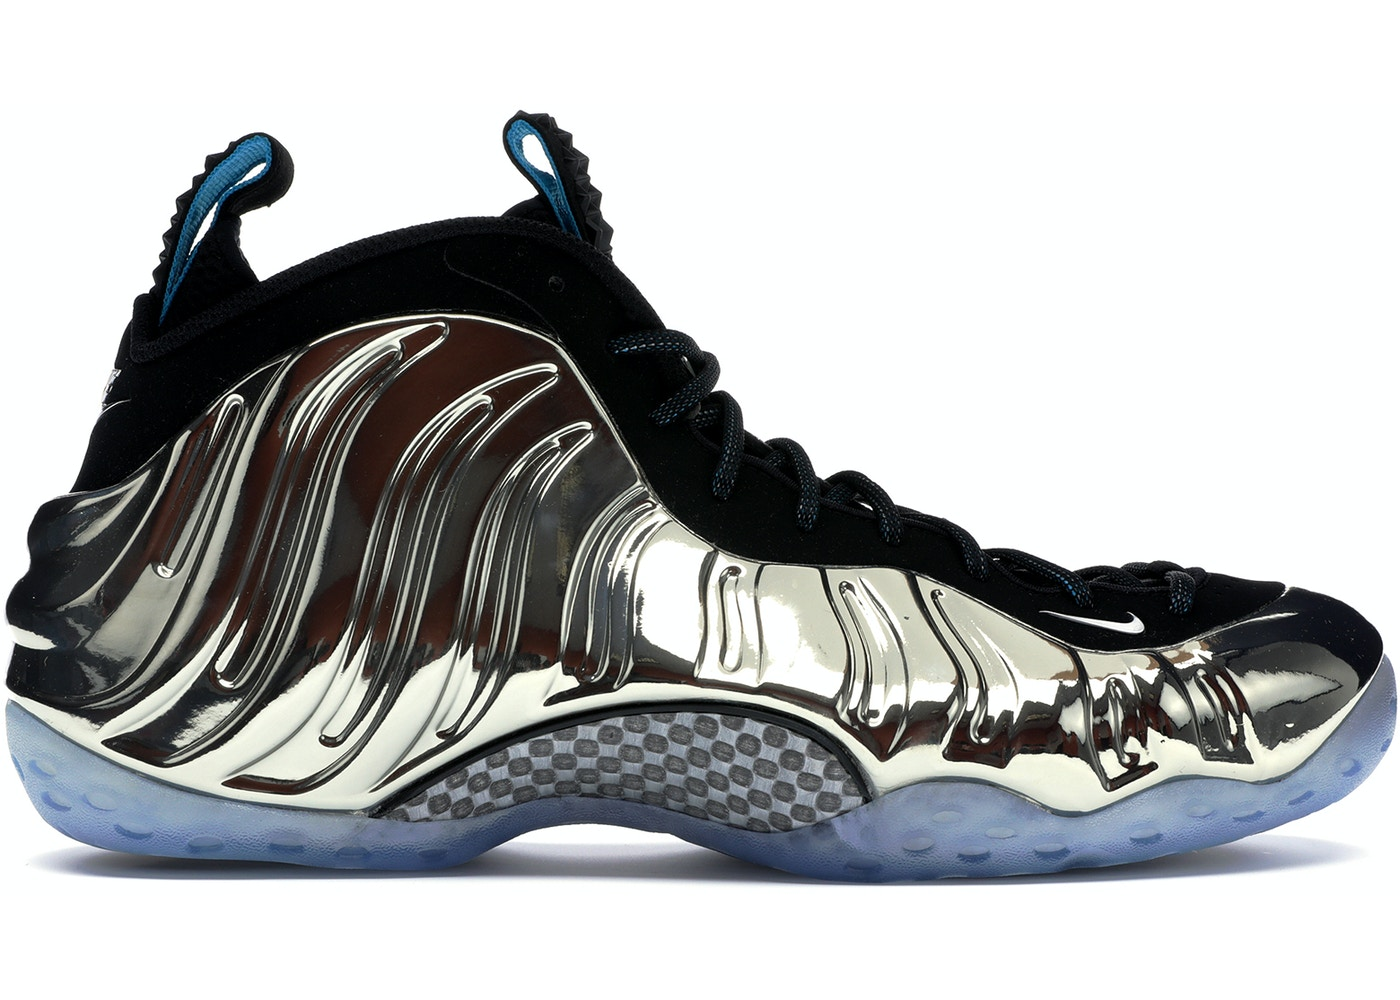 52f15edd3eb Air Foamposite One Chromeposite - 744306-001